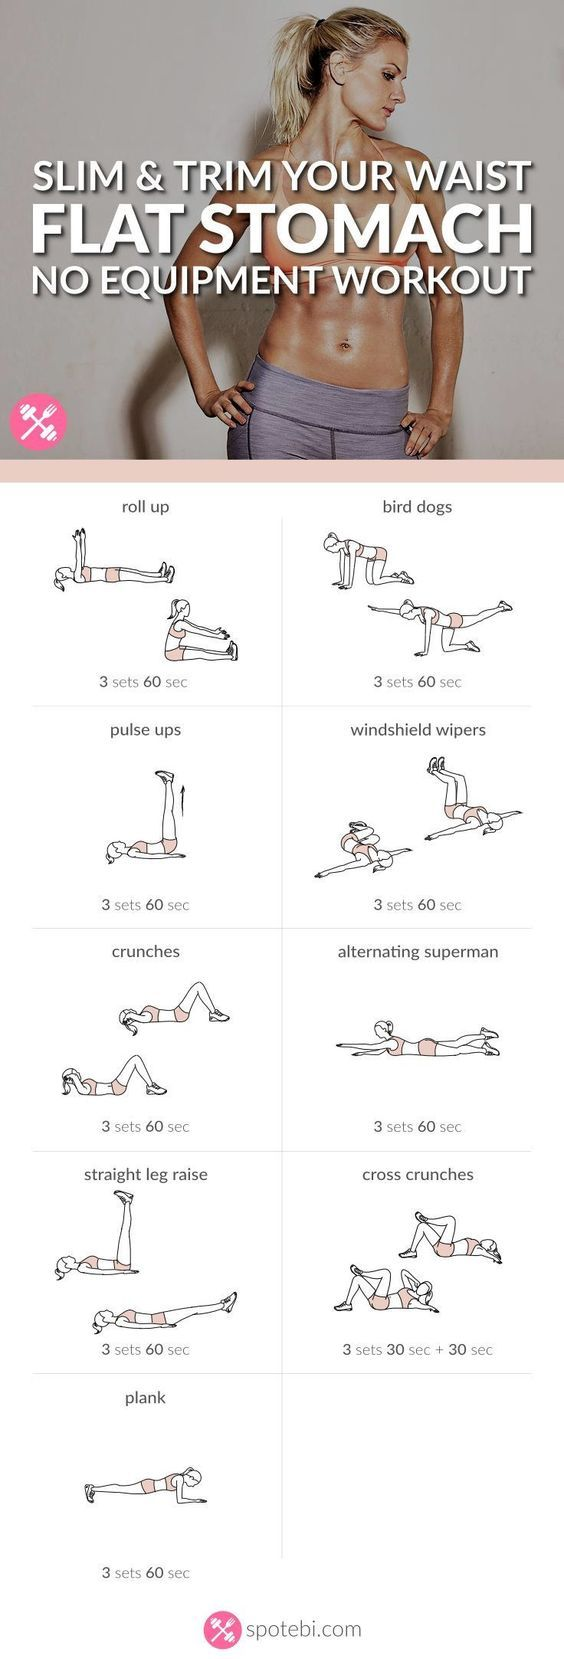 Flat Stomach Workout | My Health Plan at XYZ